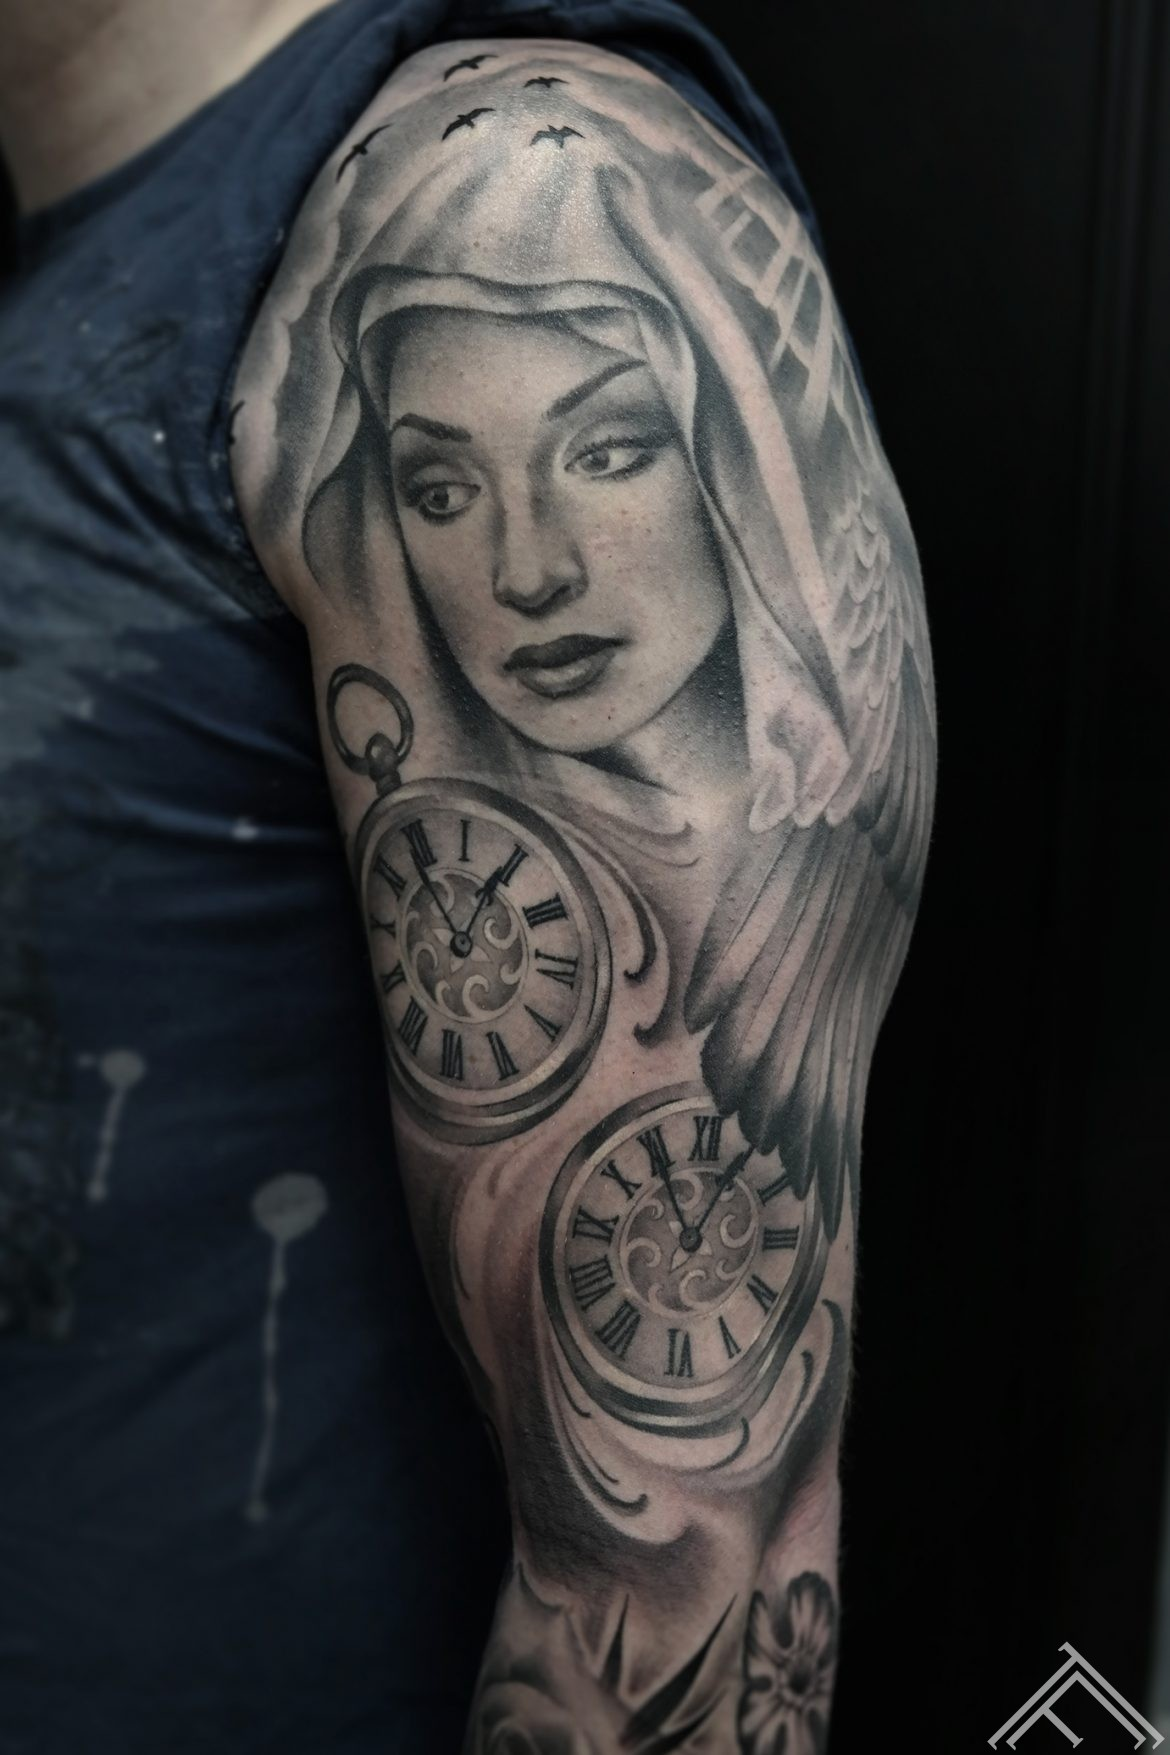 angel-virginmary-svetamarija-clock-time-engelis-tetovejums-riga-tattoofrequency-art-janissvars